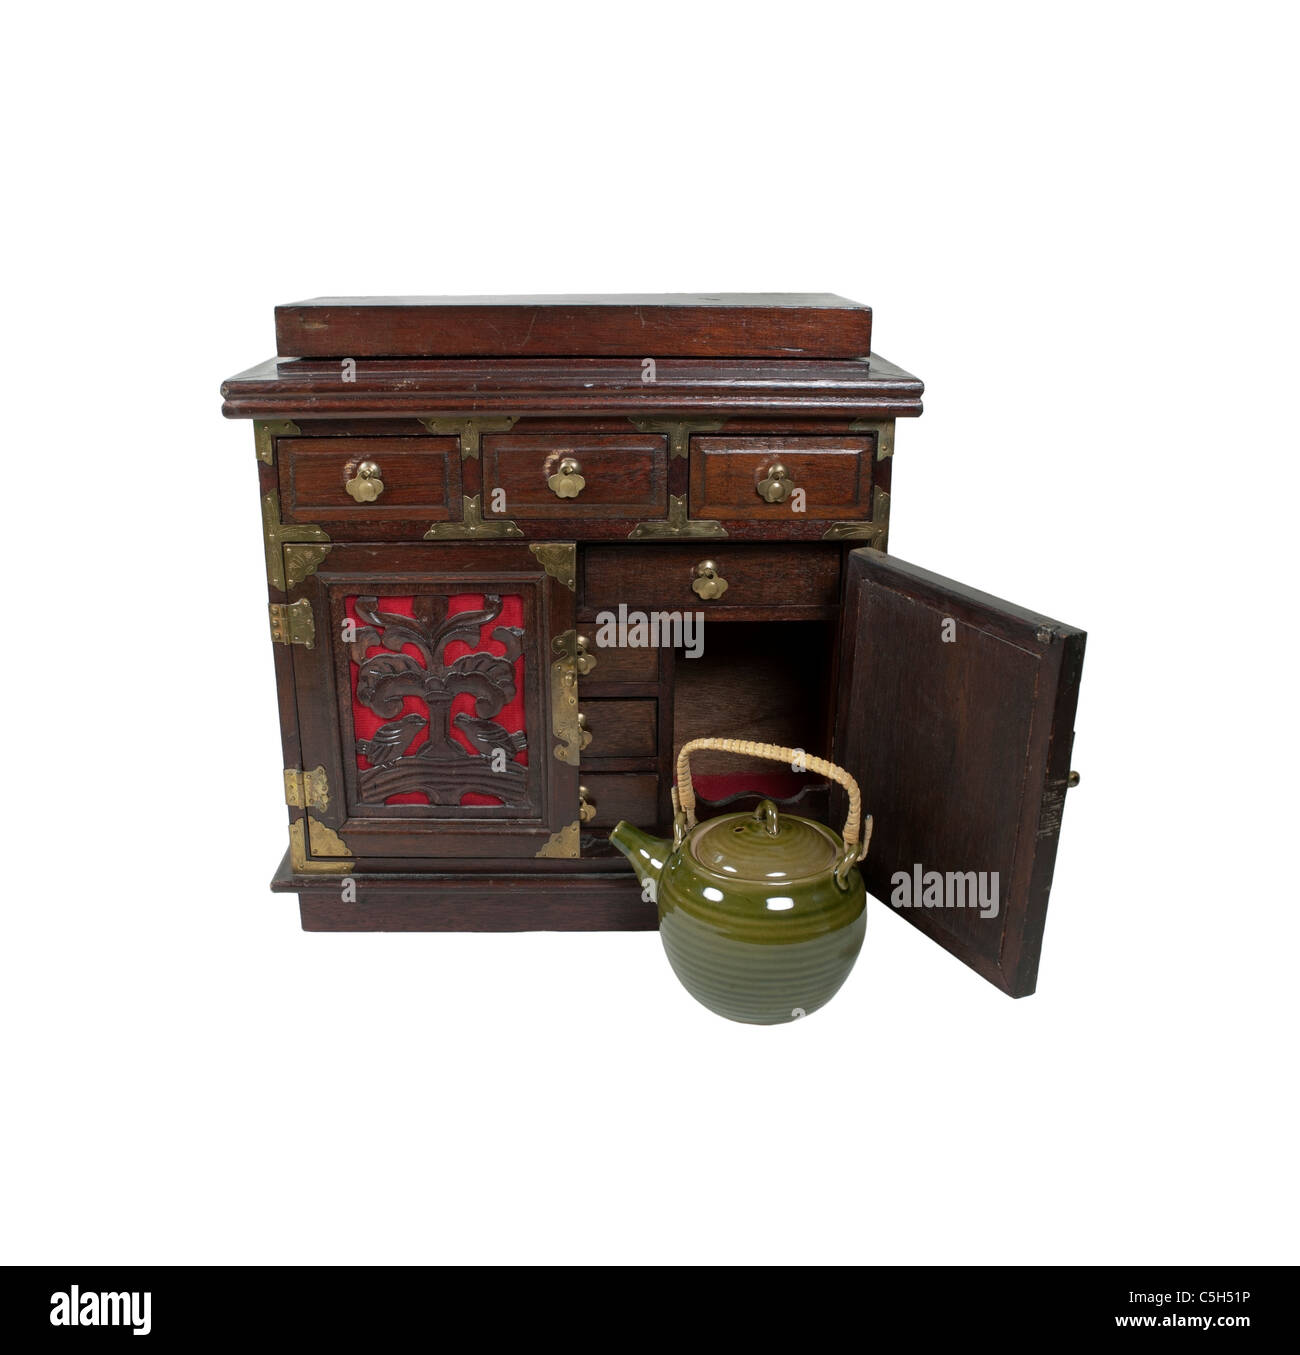 An old antique tea pot and chest with small drawers for storing various ingredients - path included - Stock Image